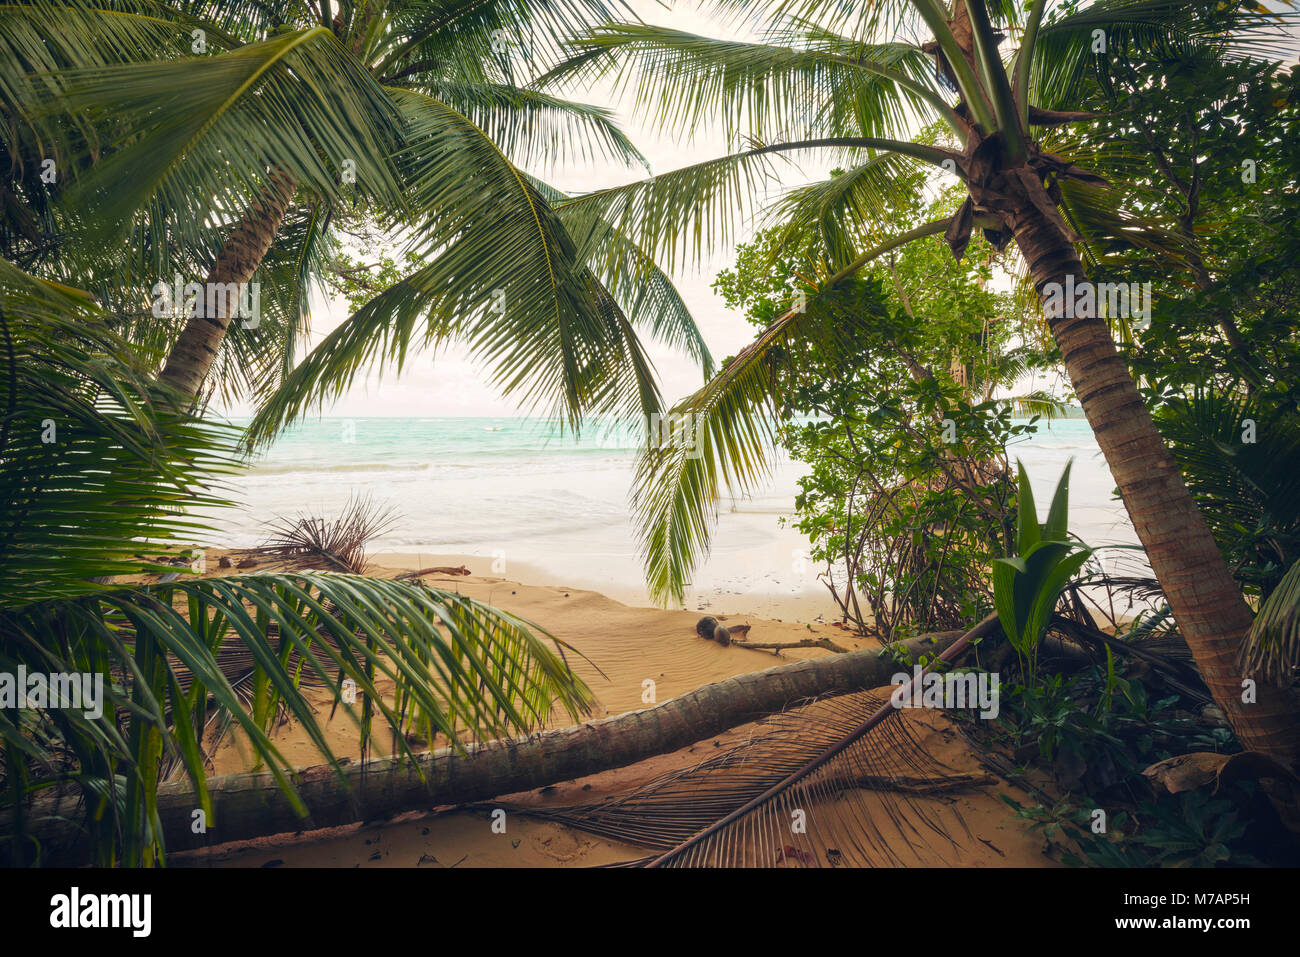 View from the palm beach to the sea, pirate cave on the Caribbean island Puerto Rico - Stock Image